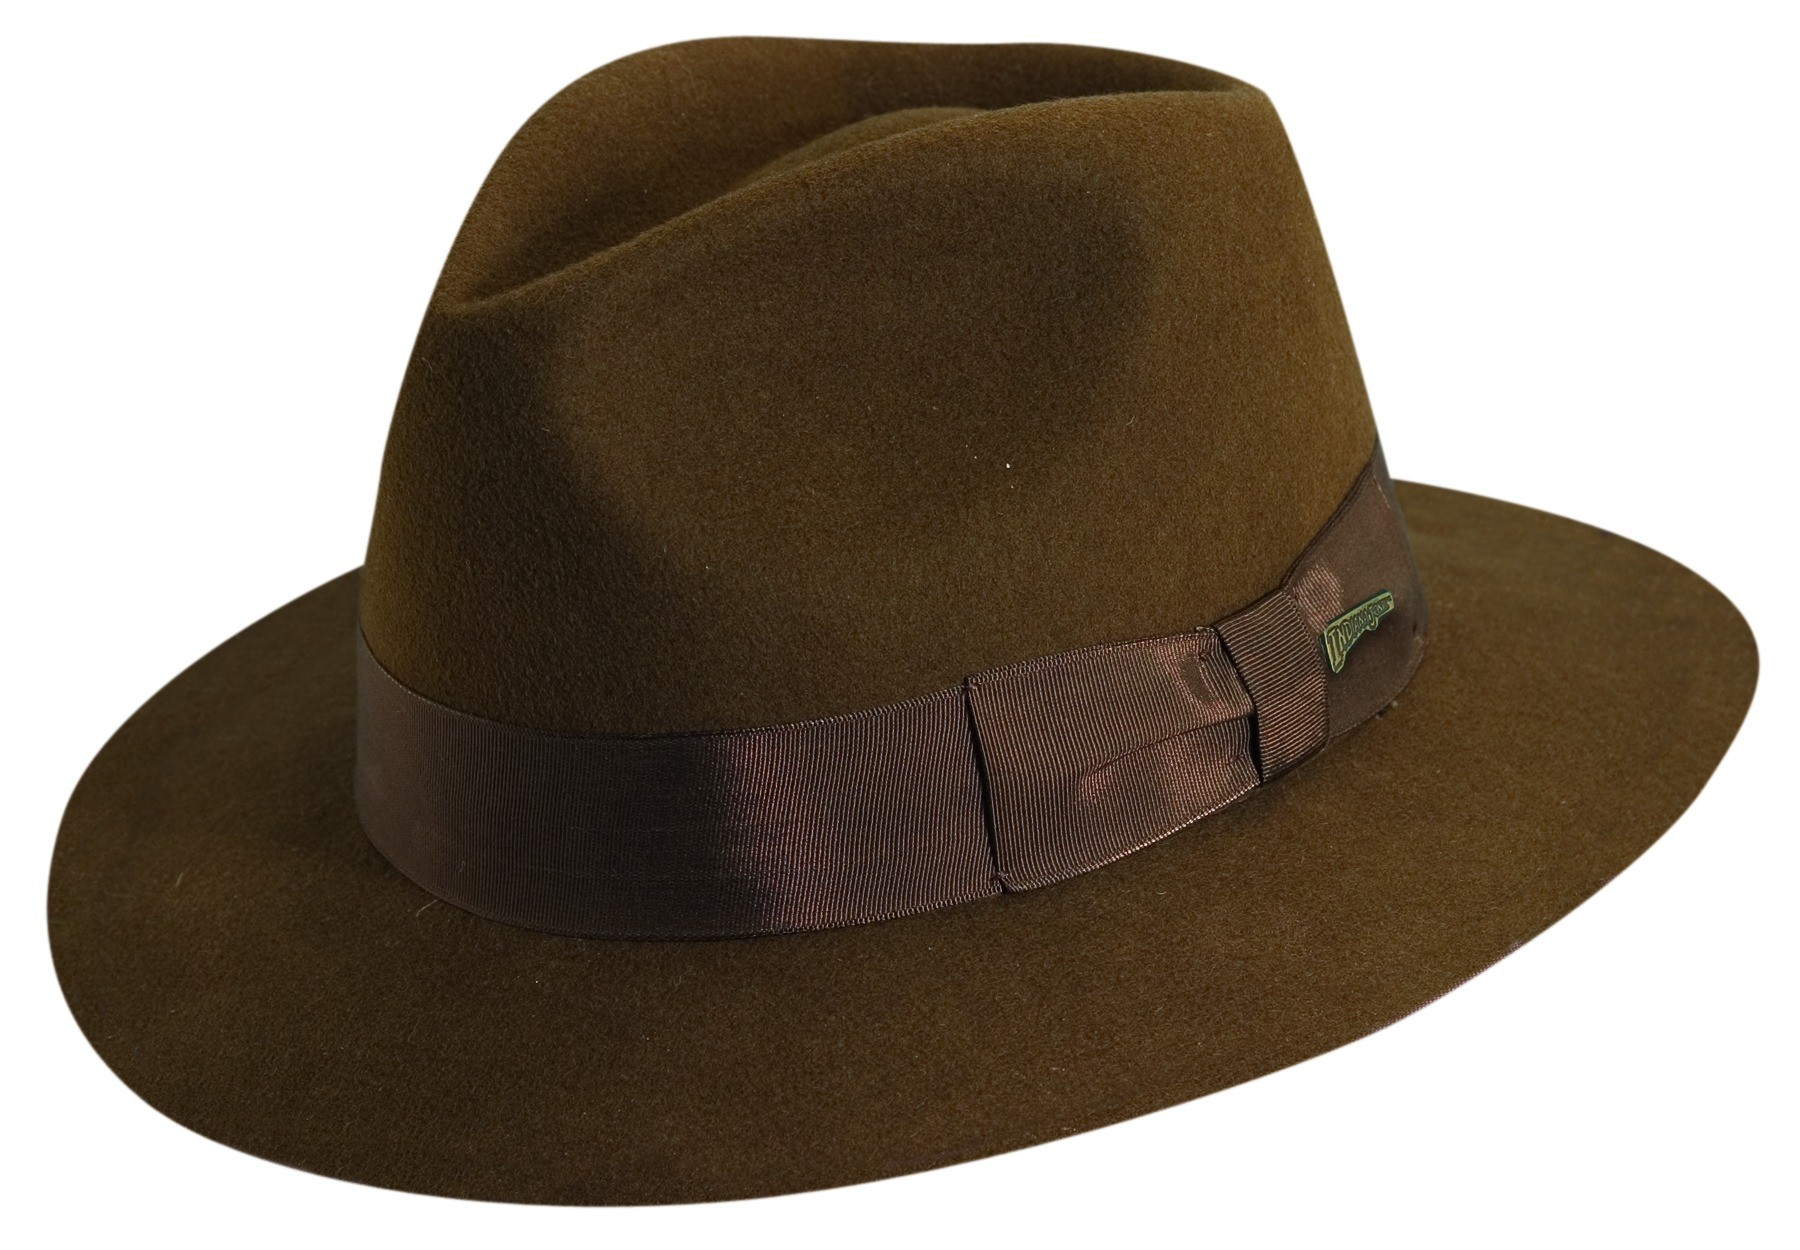 49ce512bc6536 promo code for indiana jones hat stetson d21ca dab52